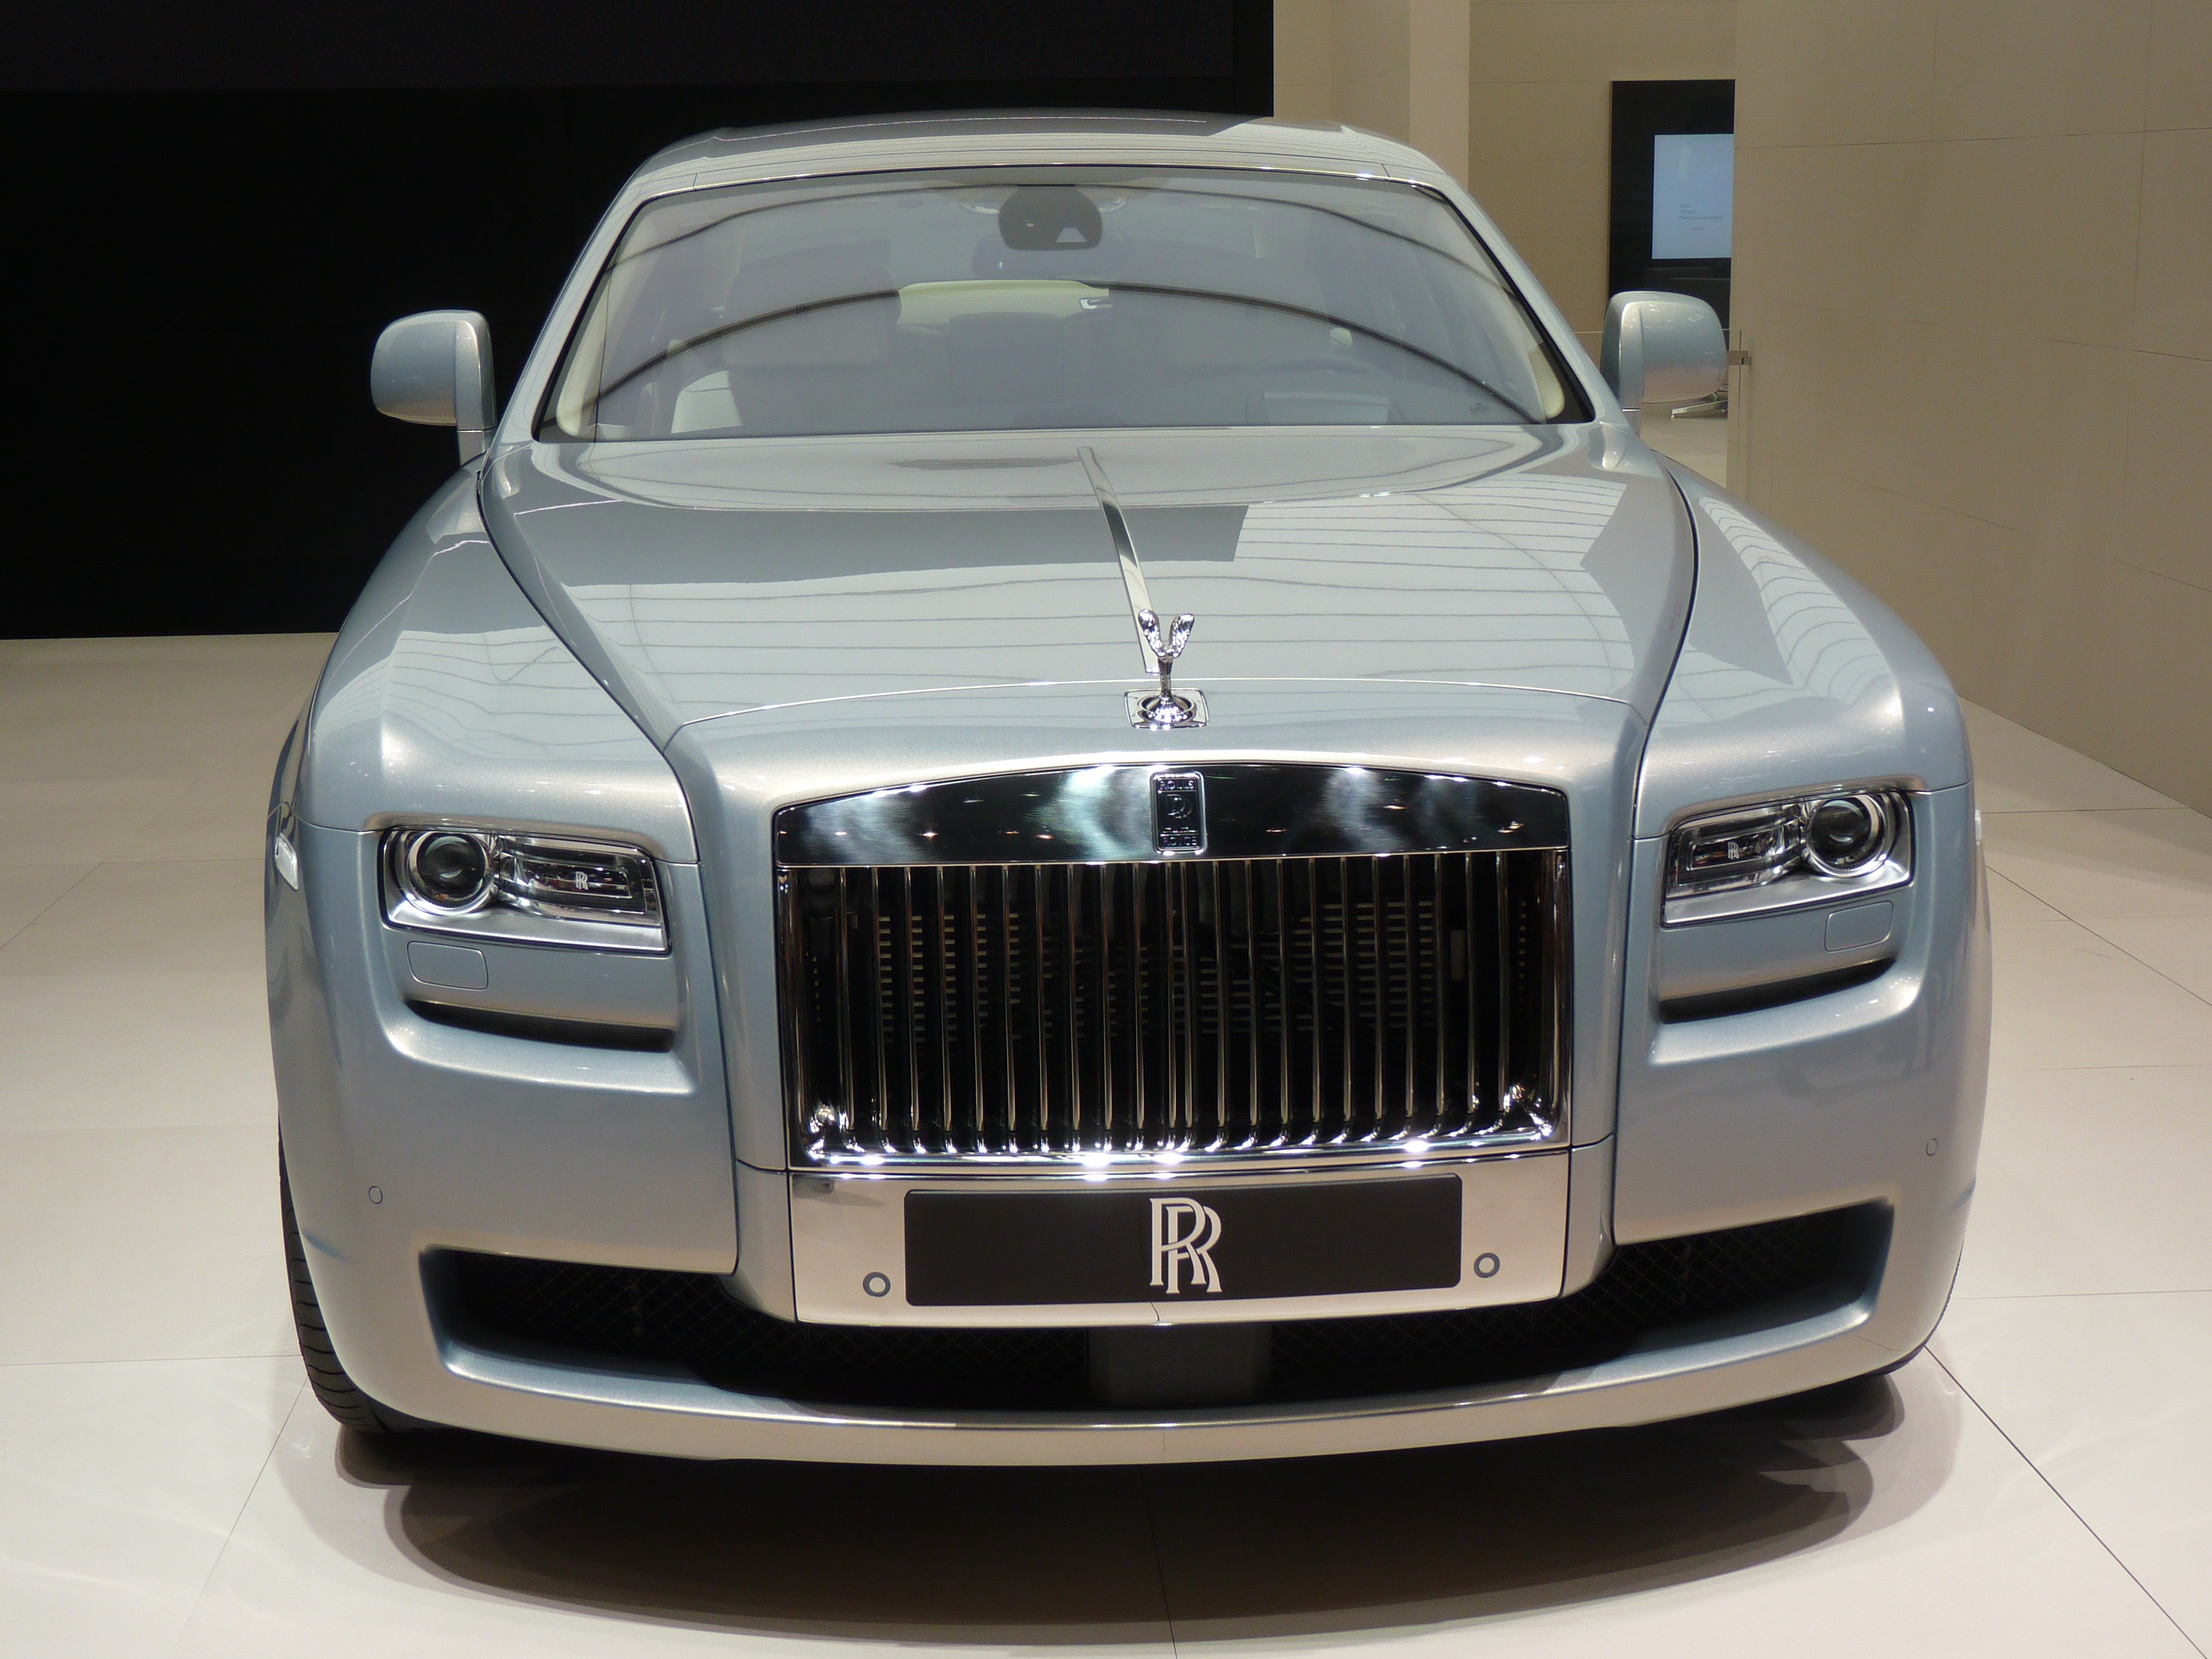 RollsRoyce Phantom Coupe 2009  pictures information